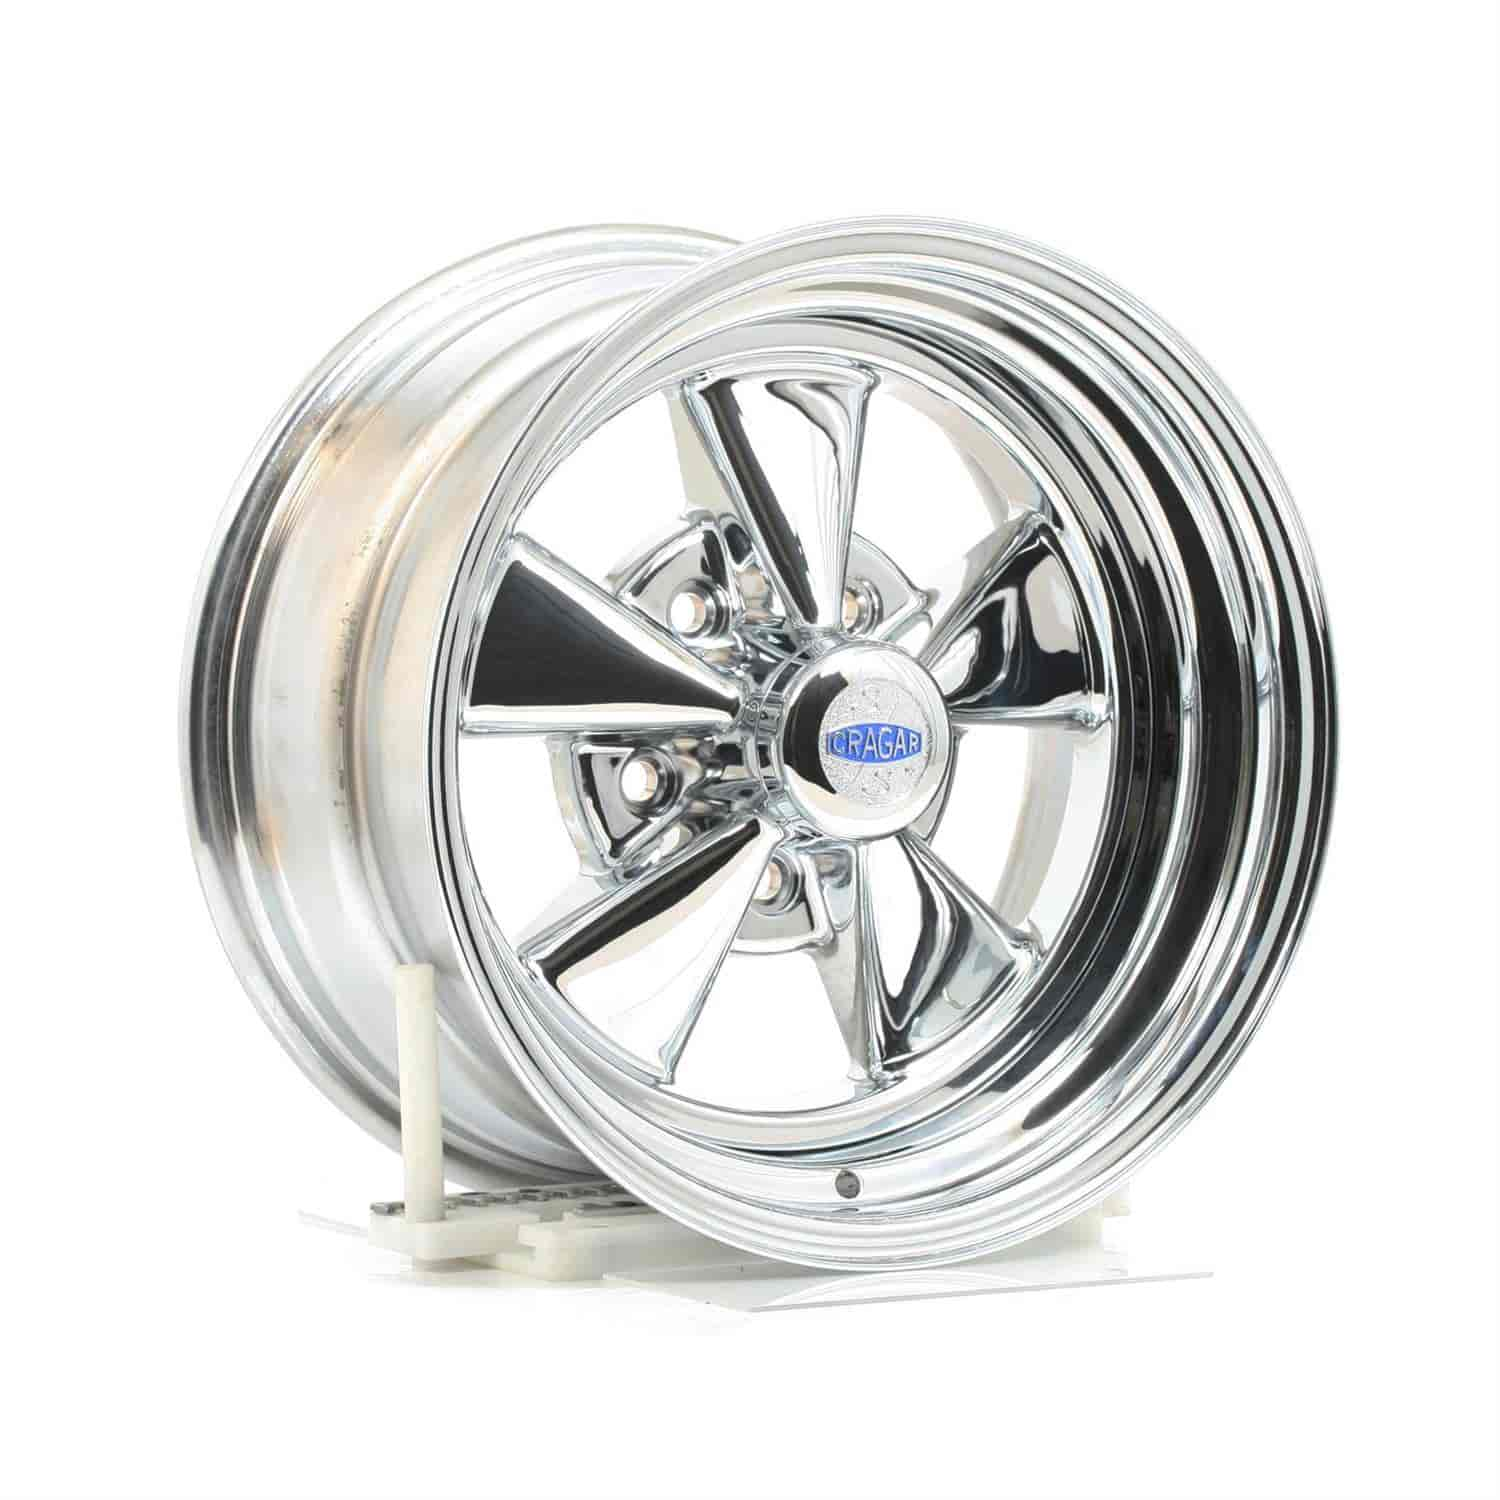 S Direct Drill Chrome Wheel Size 15 X 8